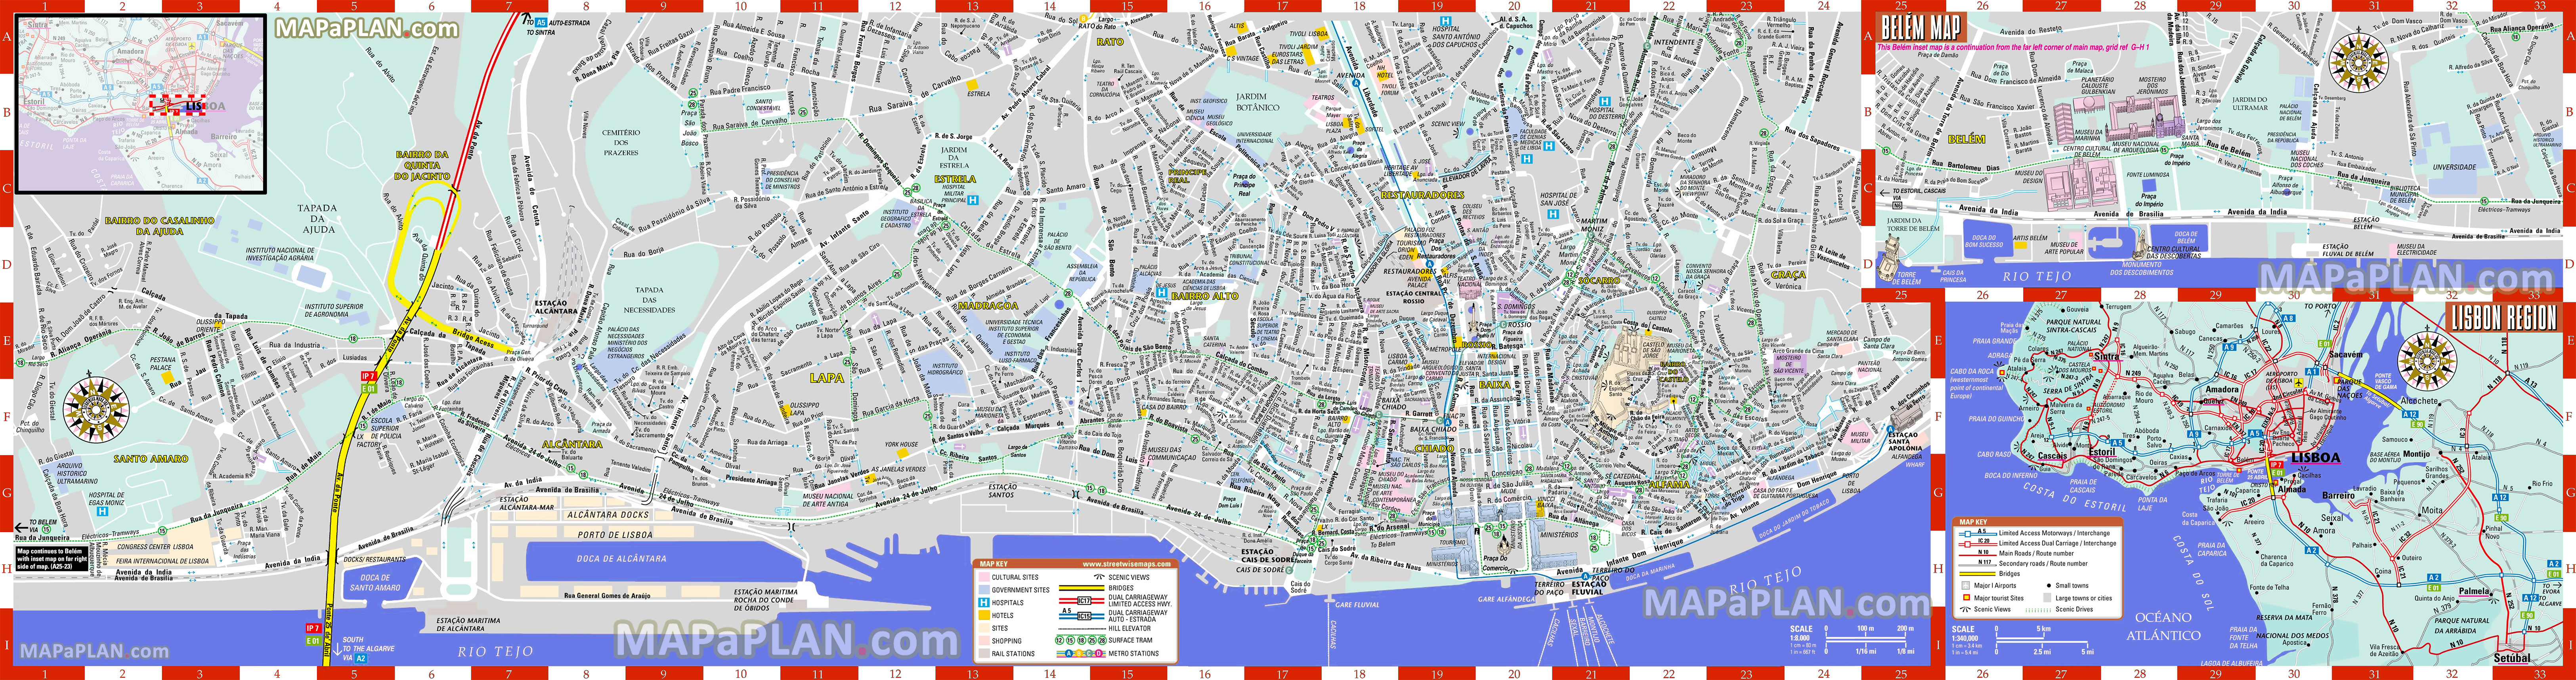 Printable Map Rome City Centre Inspirational Lisbon Maps Top Tourist Attractions Free Printable City Street Map